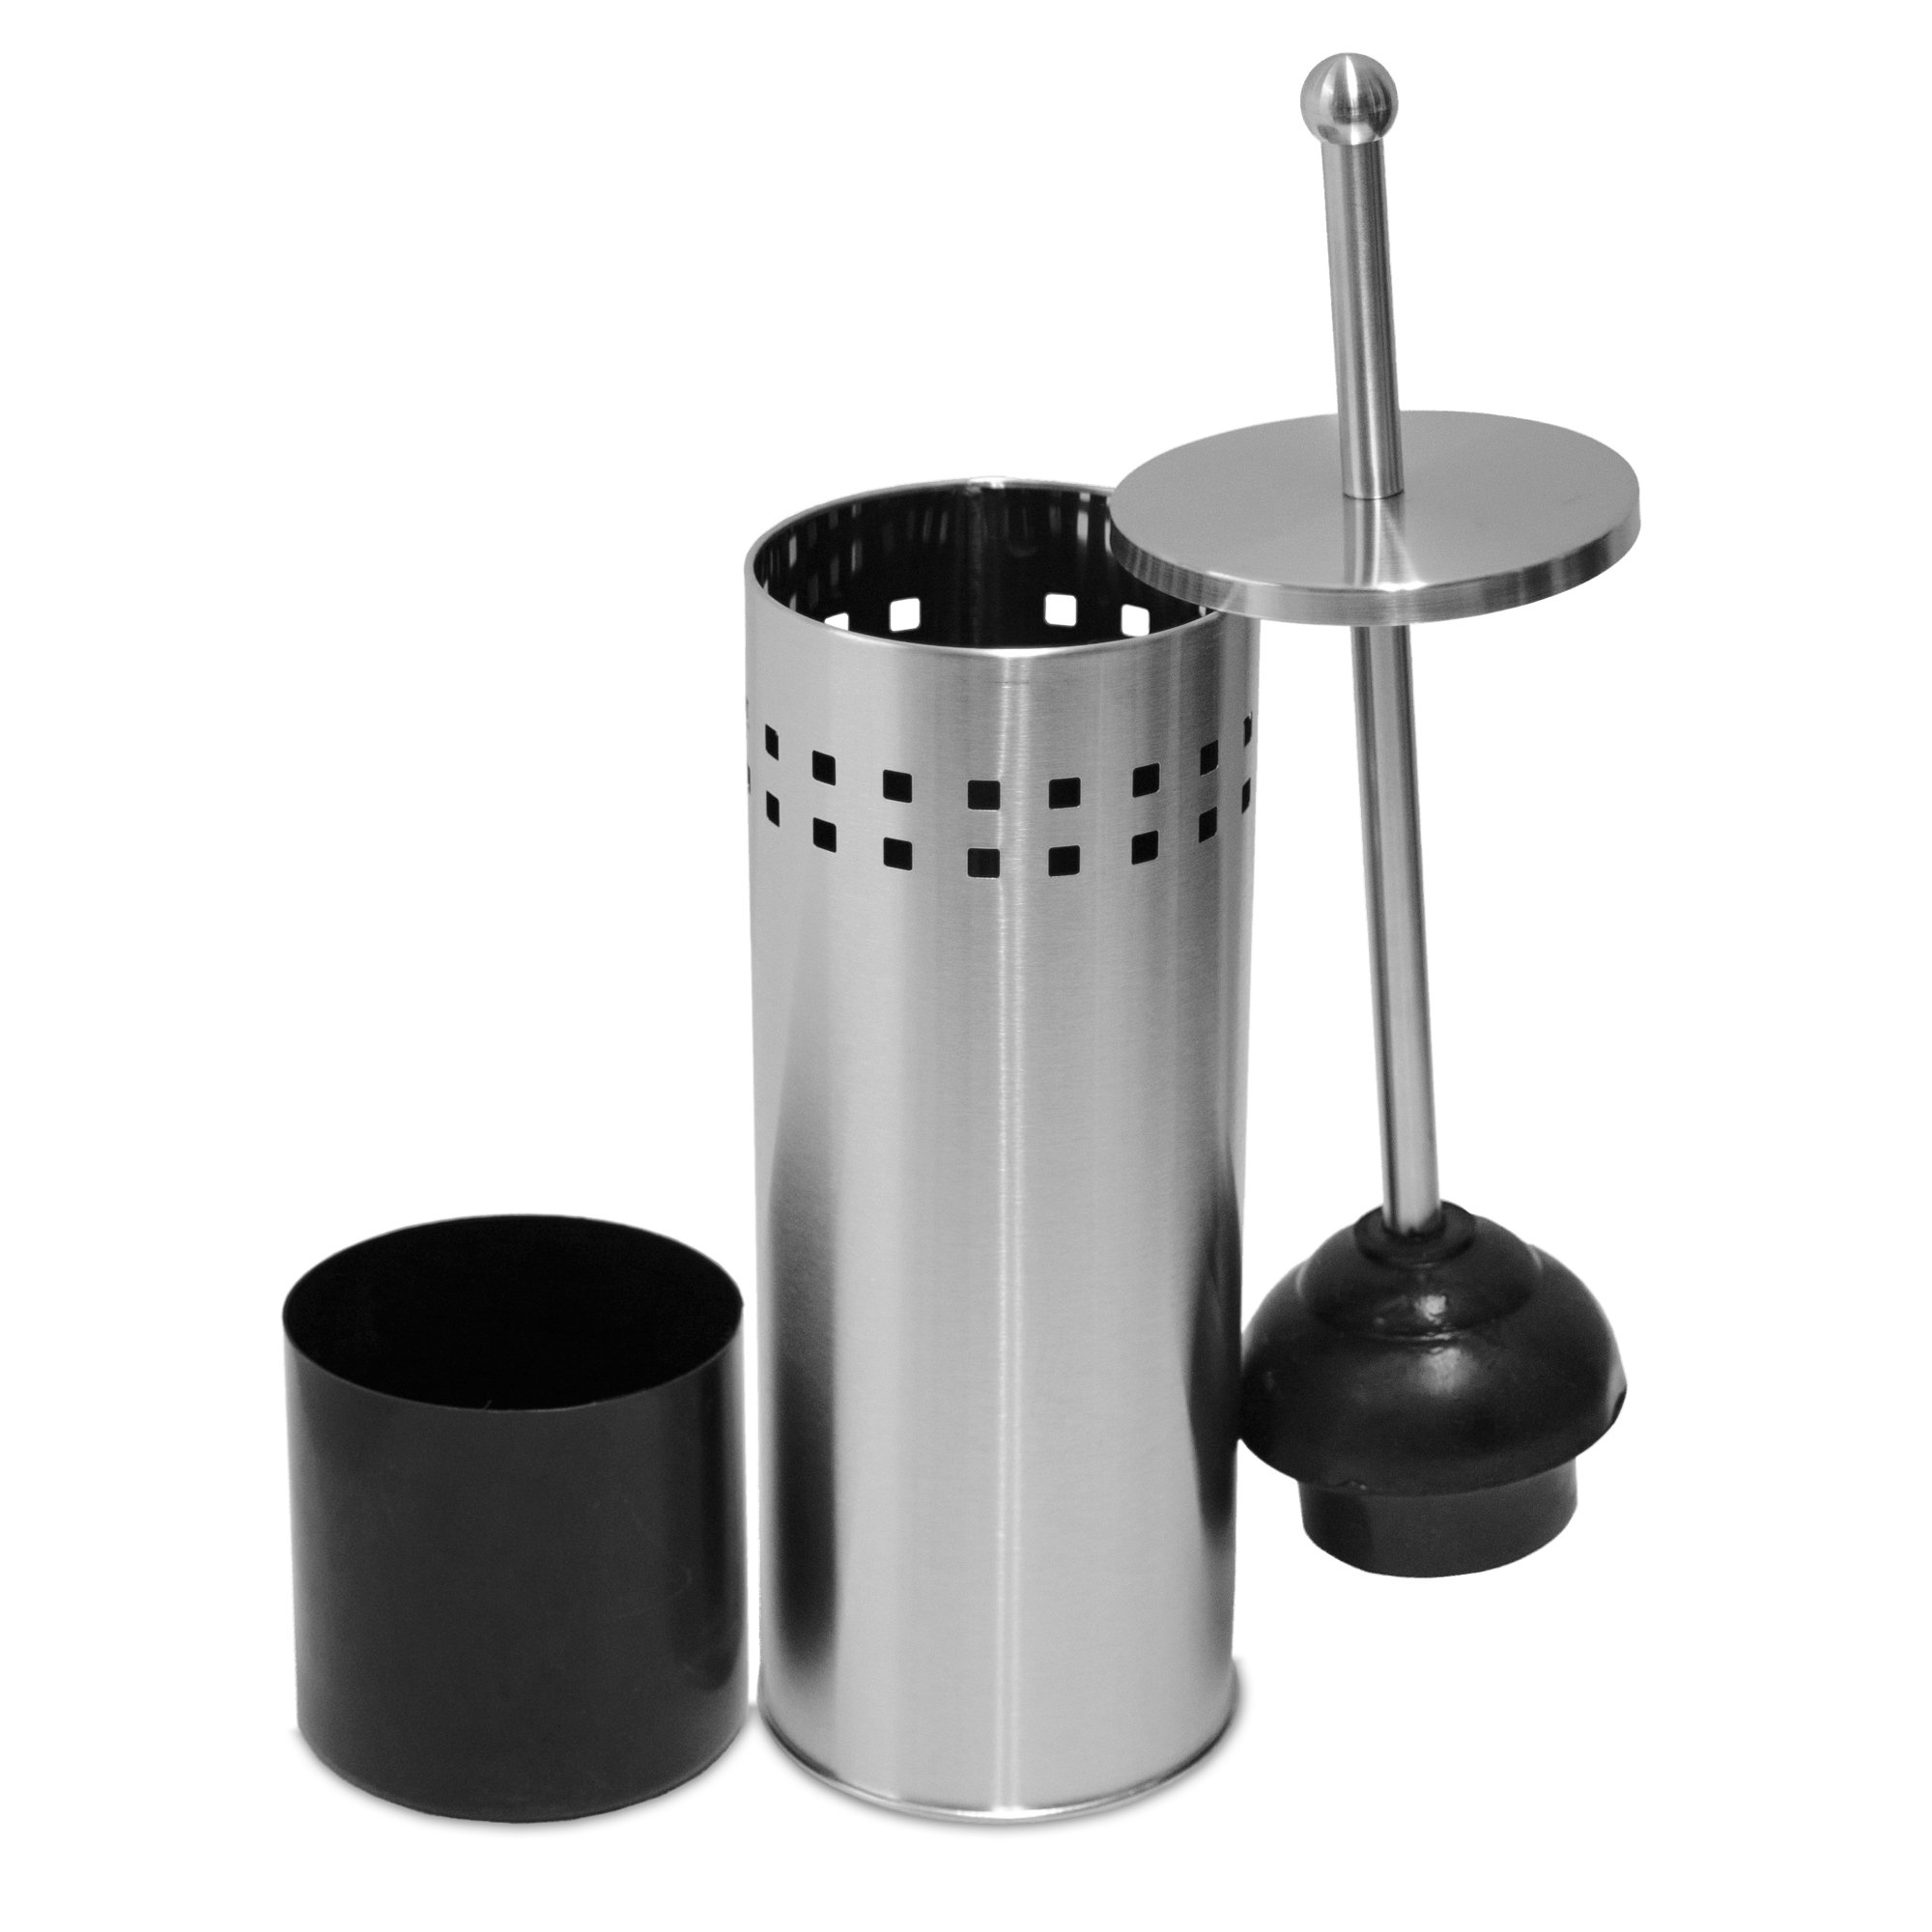 Oasis Collection Toilet Plunger & Holder, Stainless Steel Matte Finish TP029557 by Oasis Collection